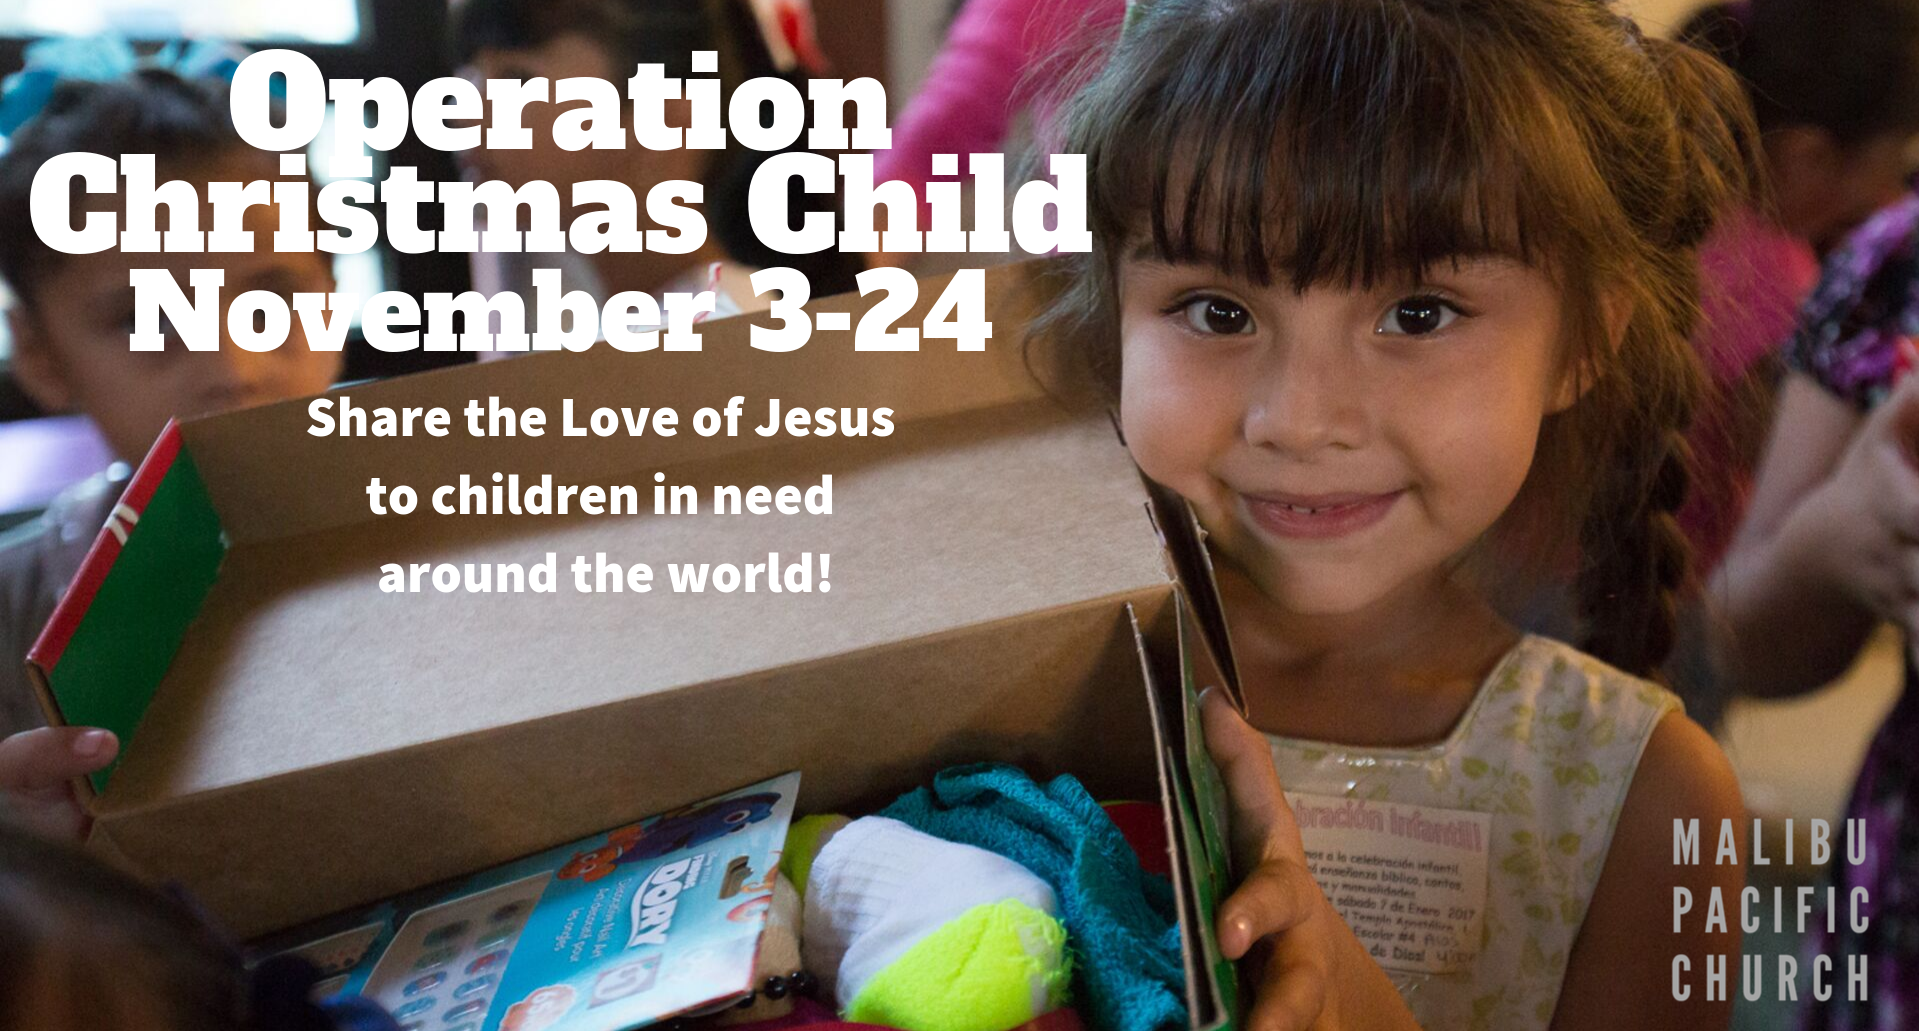 OperationChristmas Child (2) image